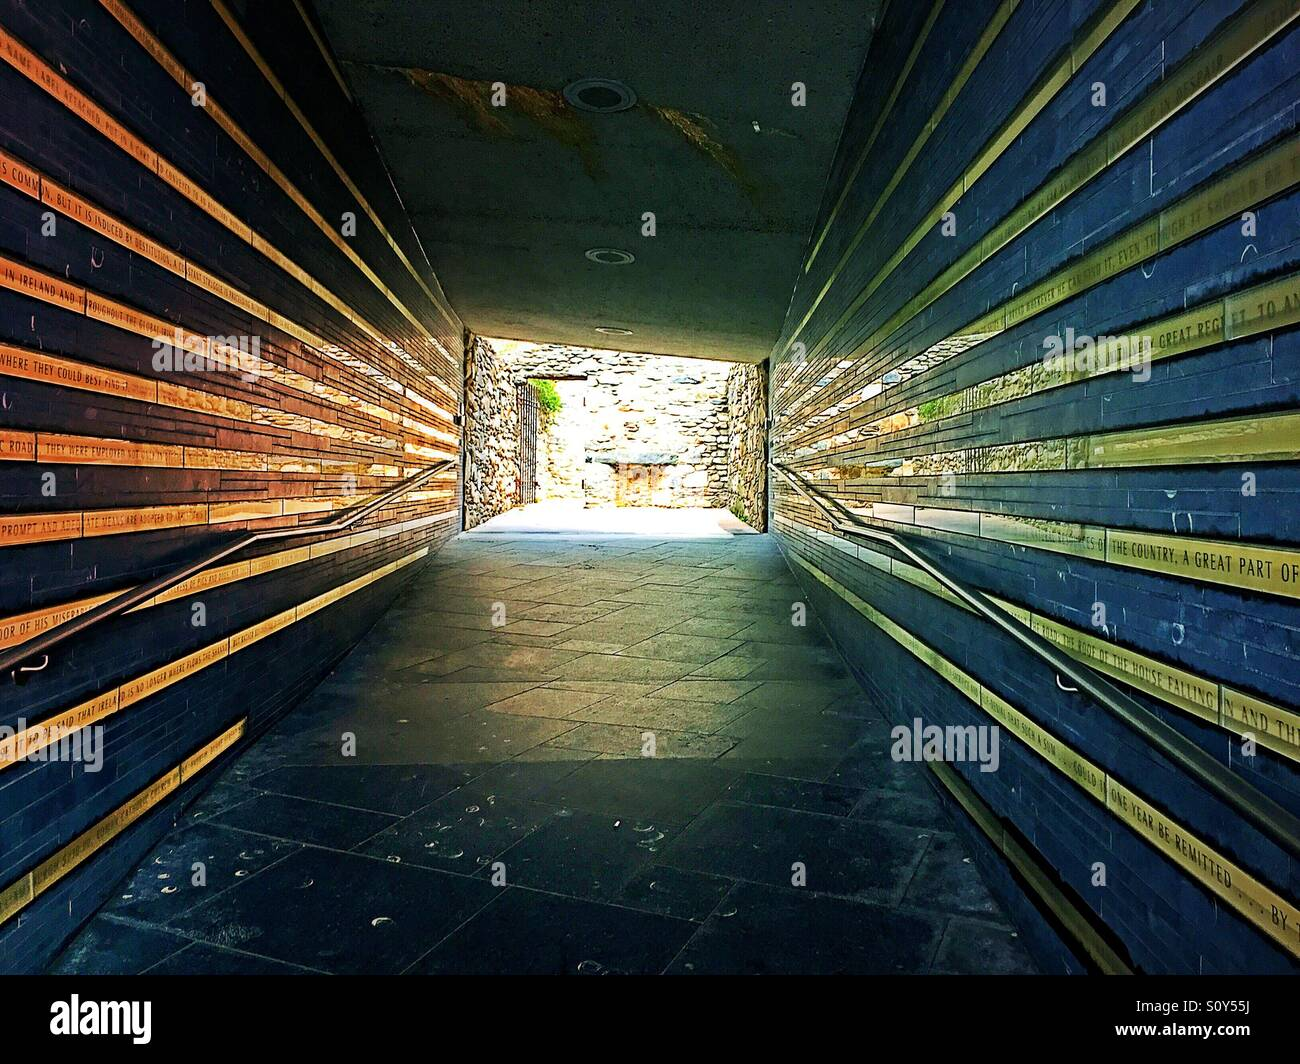 Entrance walkway for the Irish hunger memorial in downtown New York City, USA - Stock Image